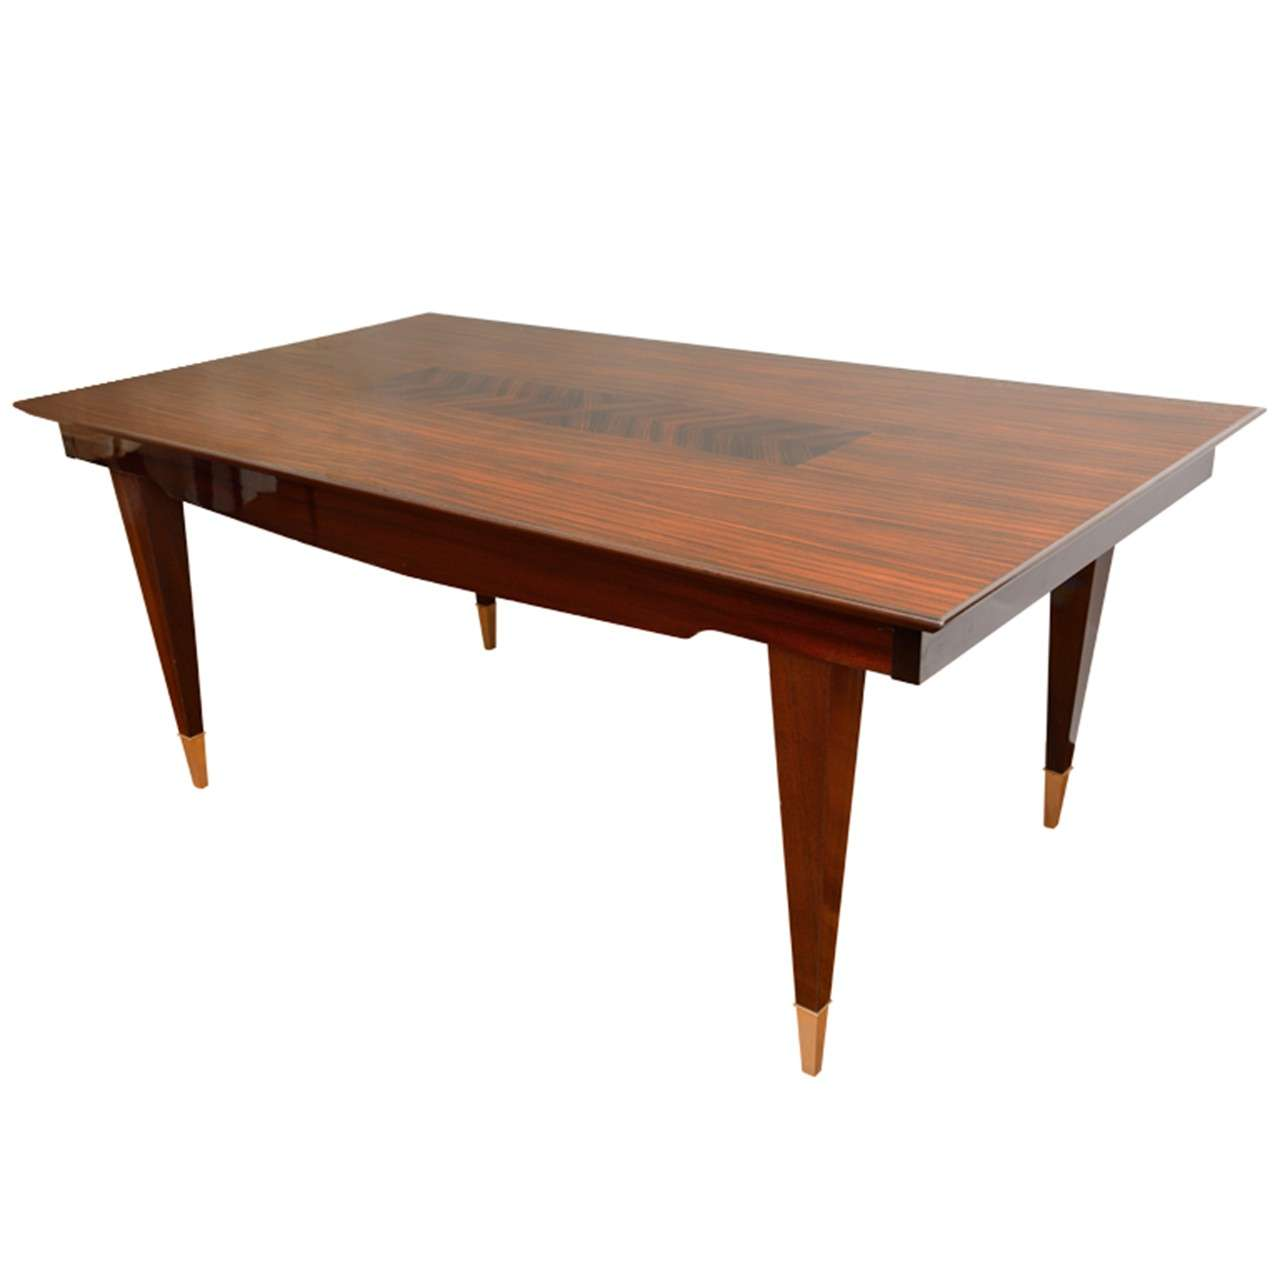 French art deco dining table saturday sale for sale at 1stdibs for Artistic dining room tables